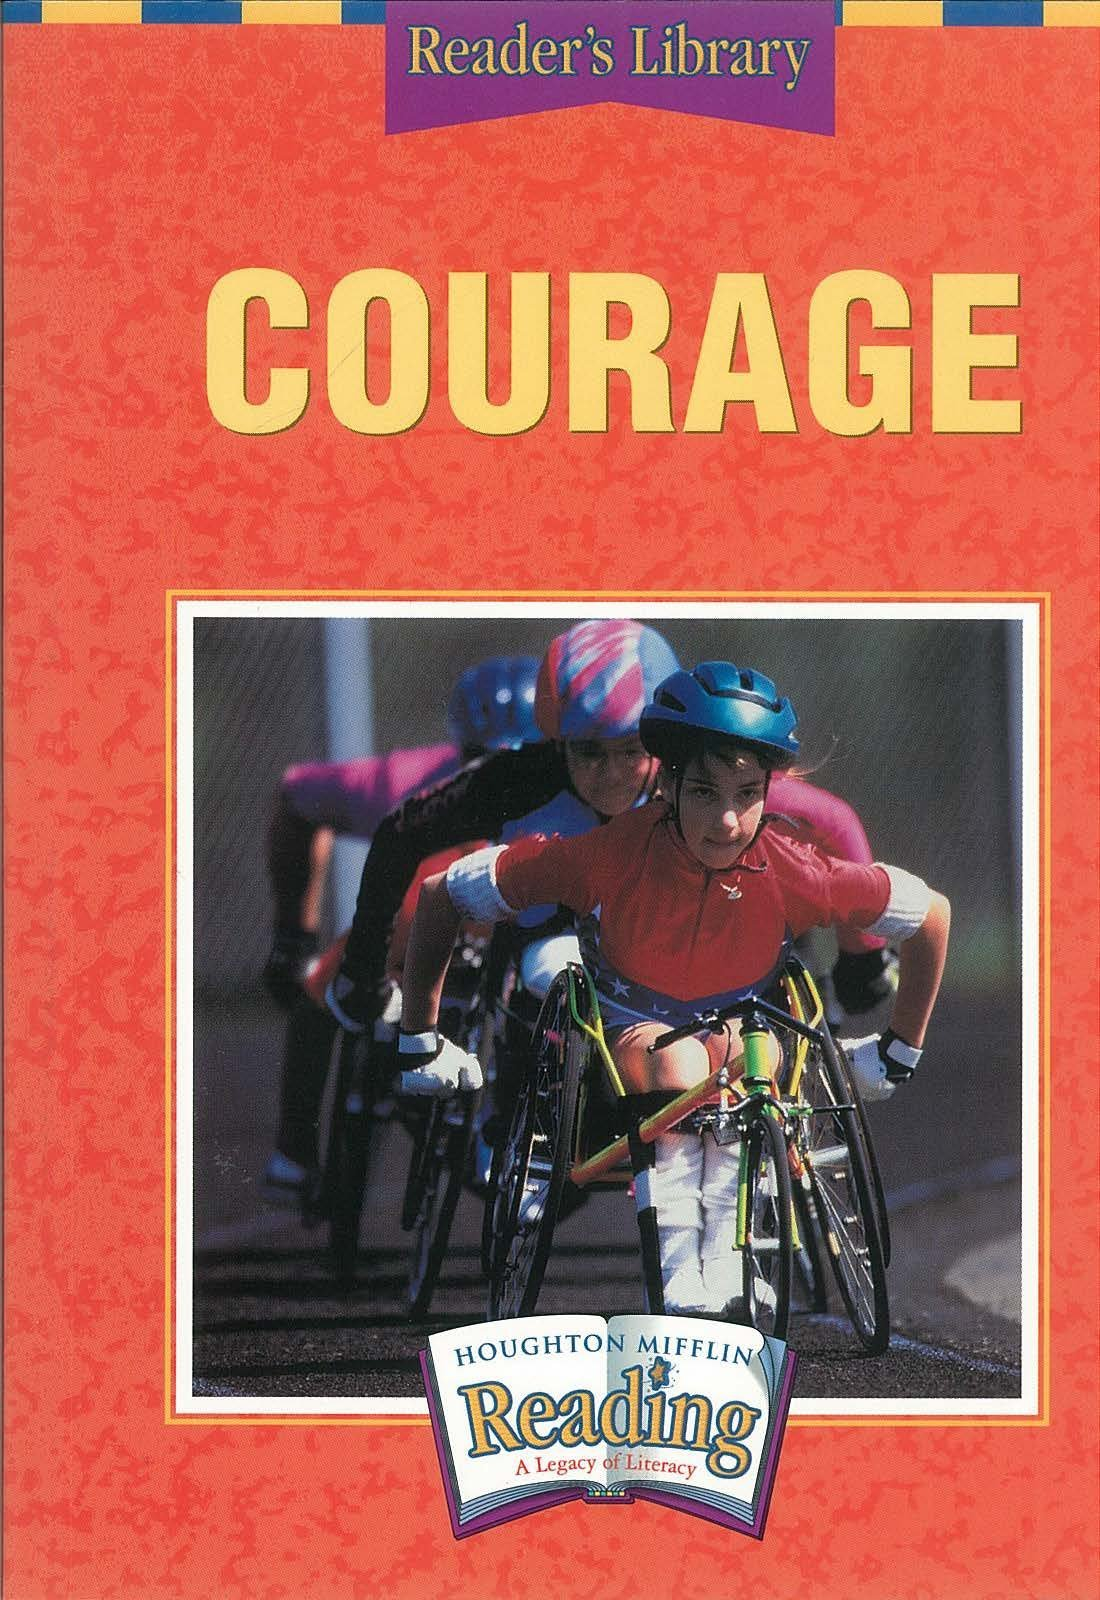 Read Online Houghton Mifflin Reading: The Nation's Choice: Reader's Library Grade 6 Theme 1 - Courage ebook